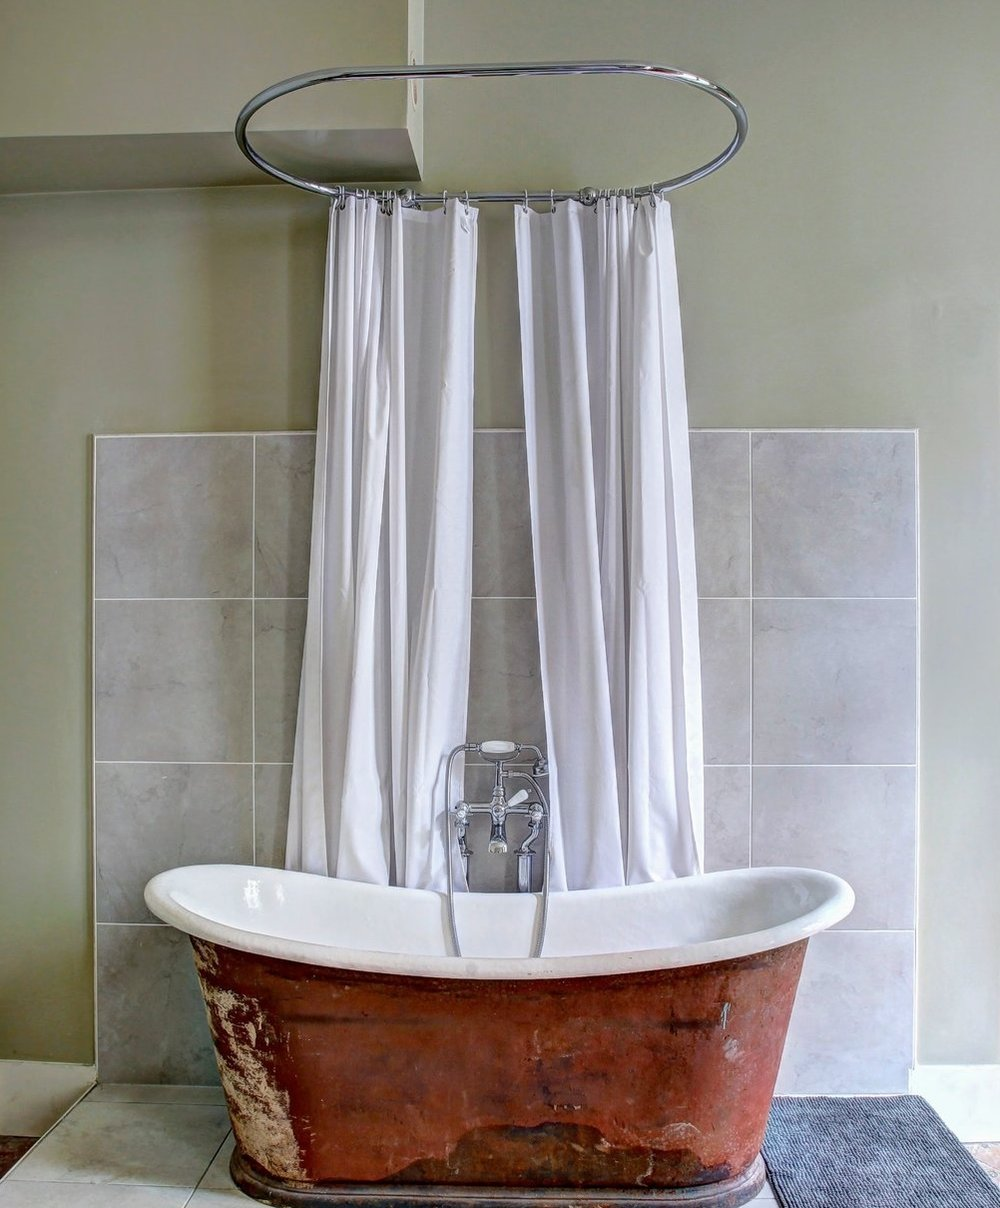 parisan bath tub.jpg